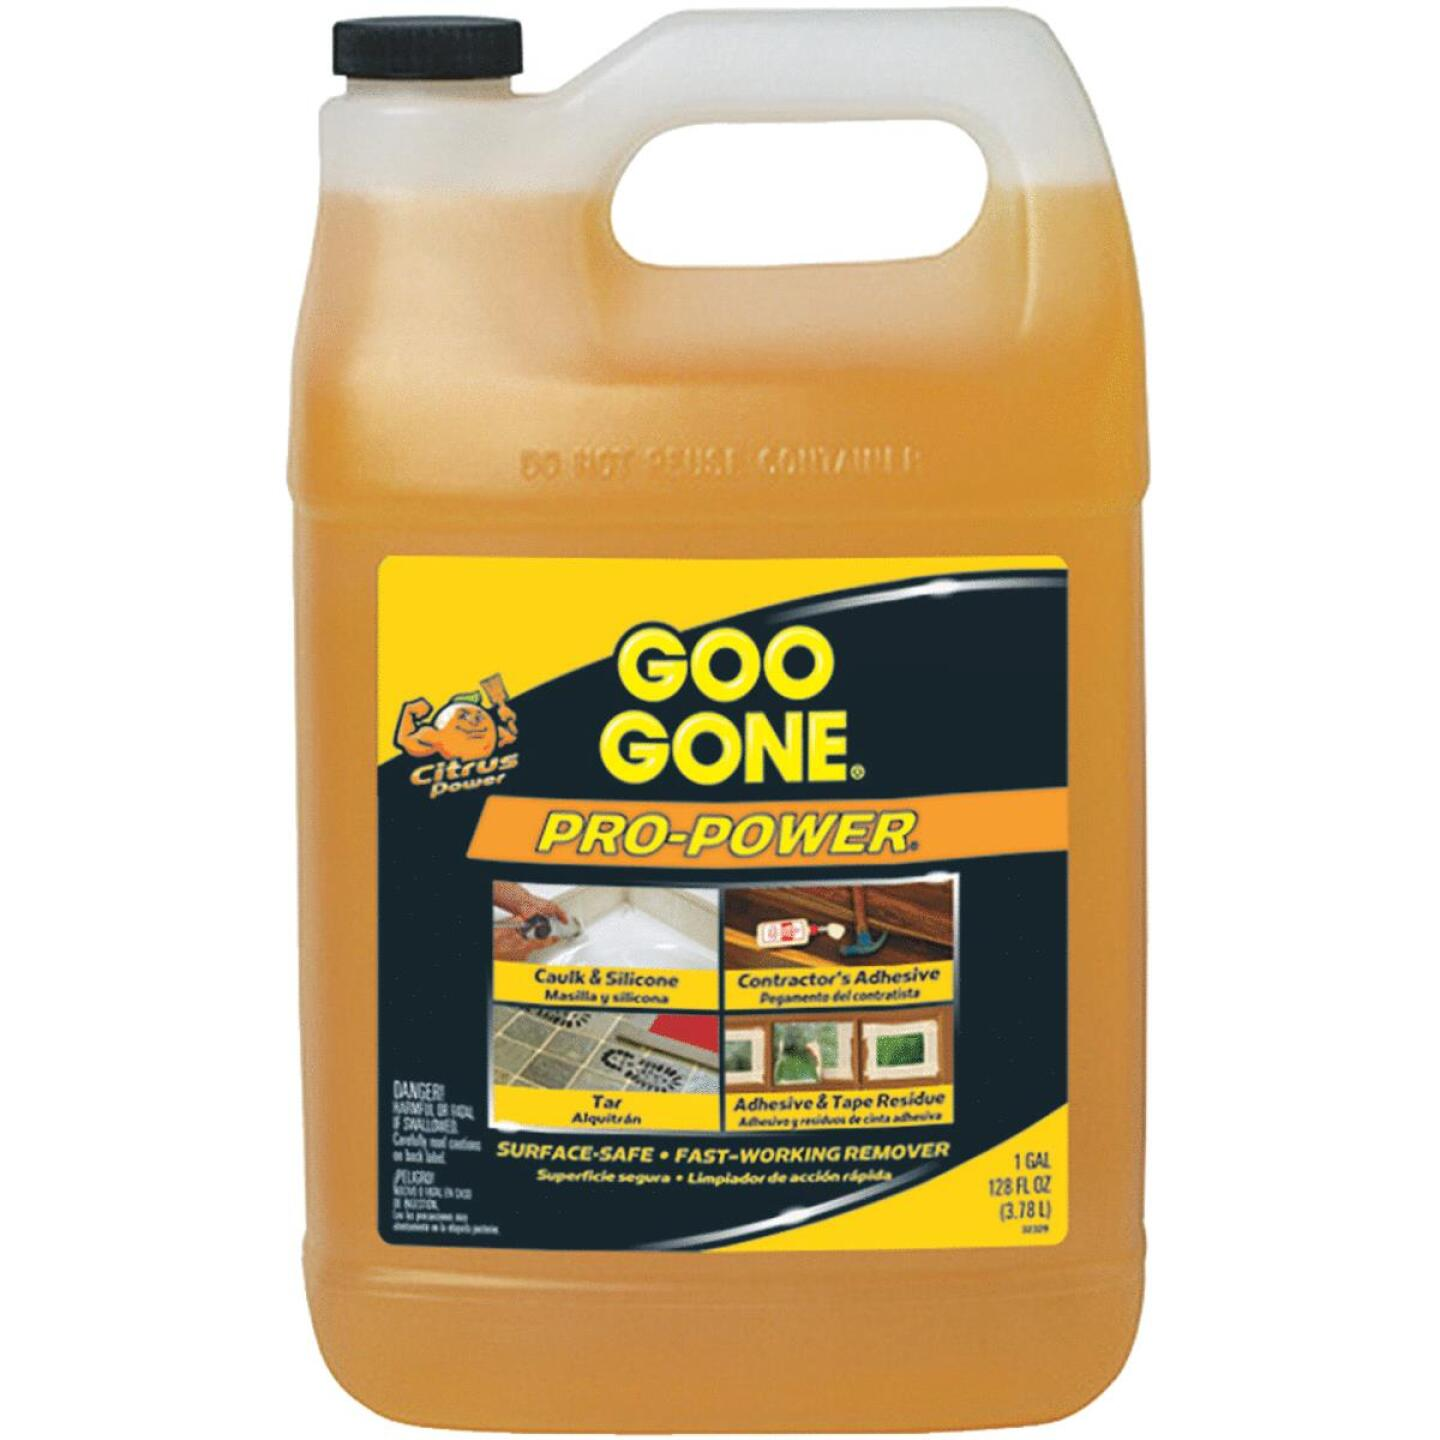 Goo Gone 1 Gal. Pro-Power Adhesive Remover Image 309